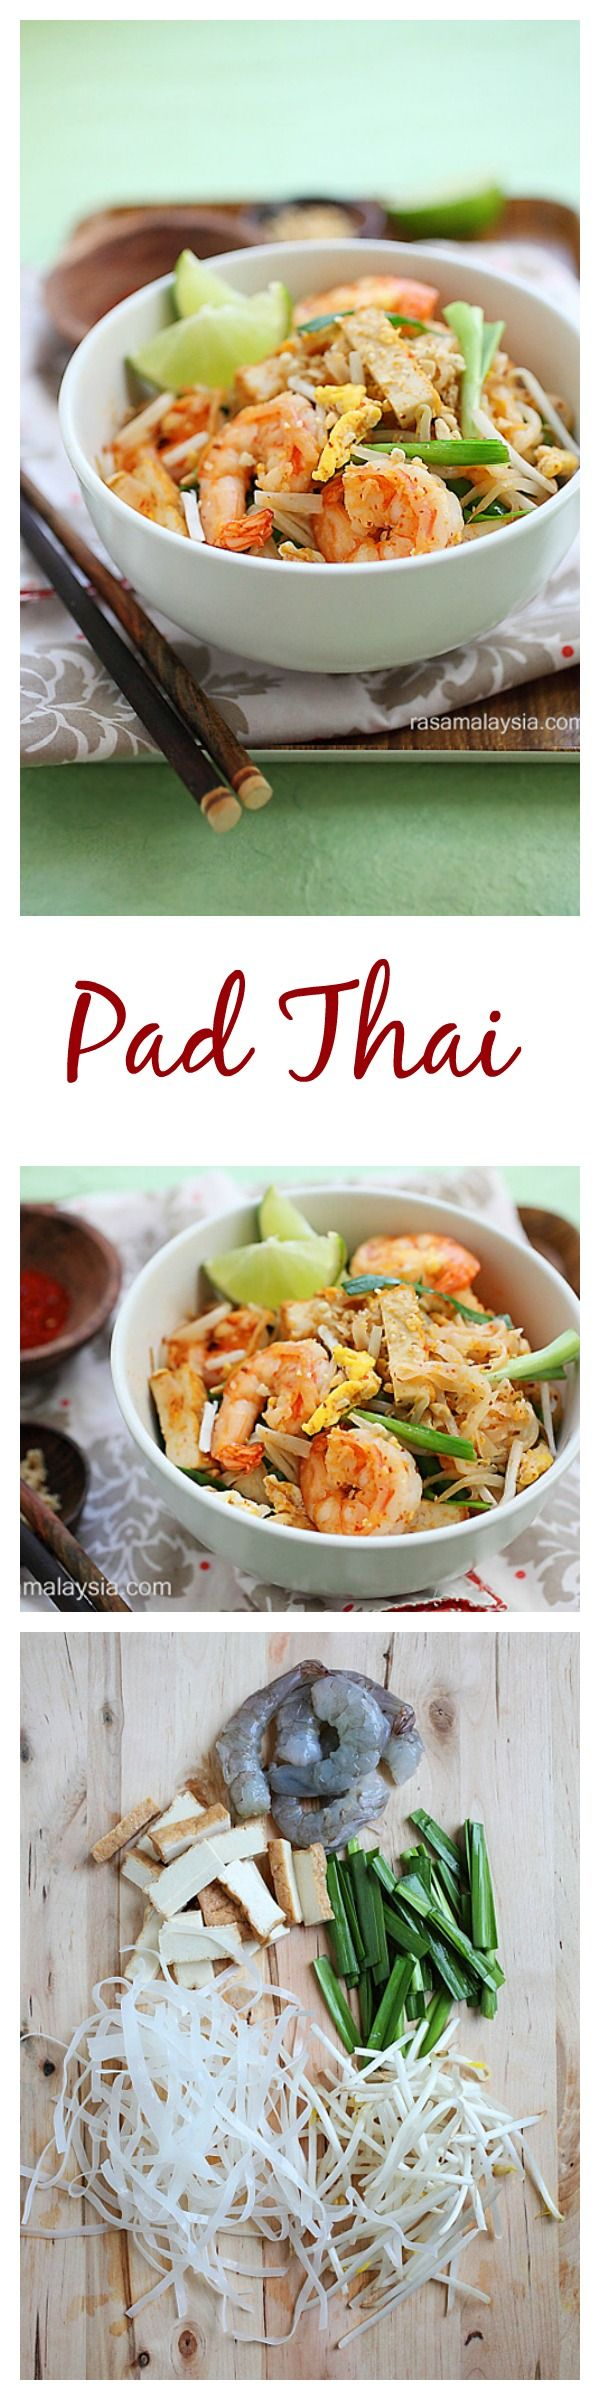 Pad Thai is a Thai noodle that is tasty and savory. Easy Pad Thai recipe that calls for simple ingredients to make Thai Pad Thai noodles at home | http://rasamalaysia.com